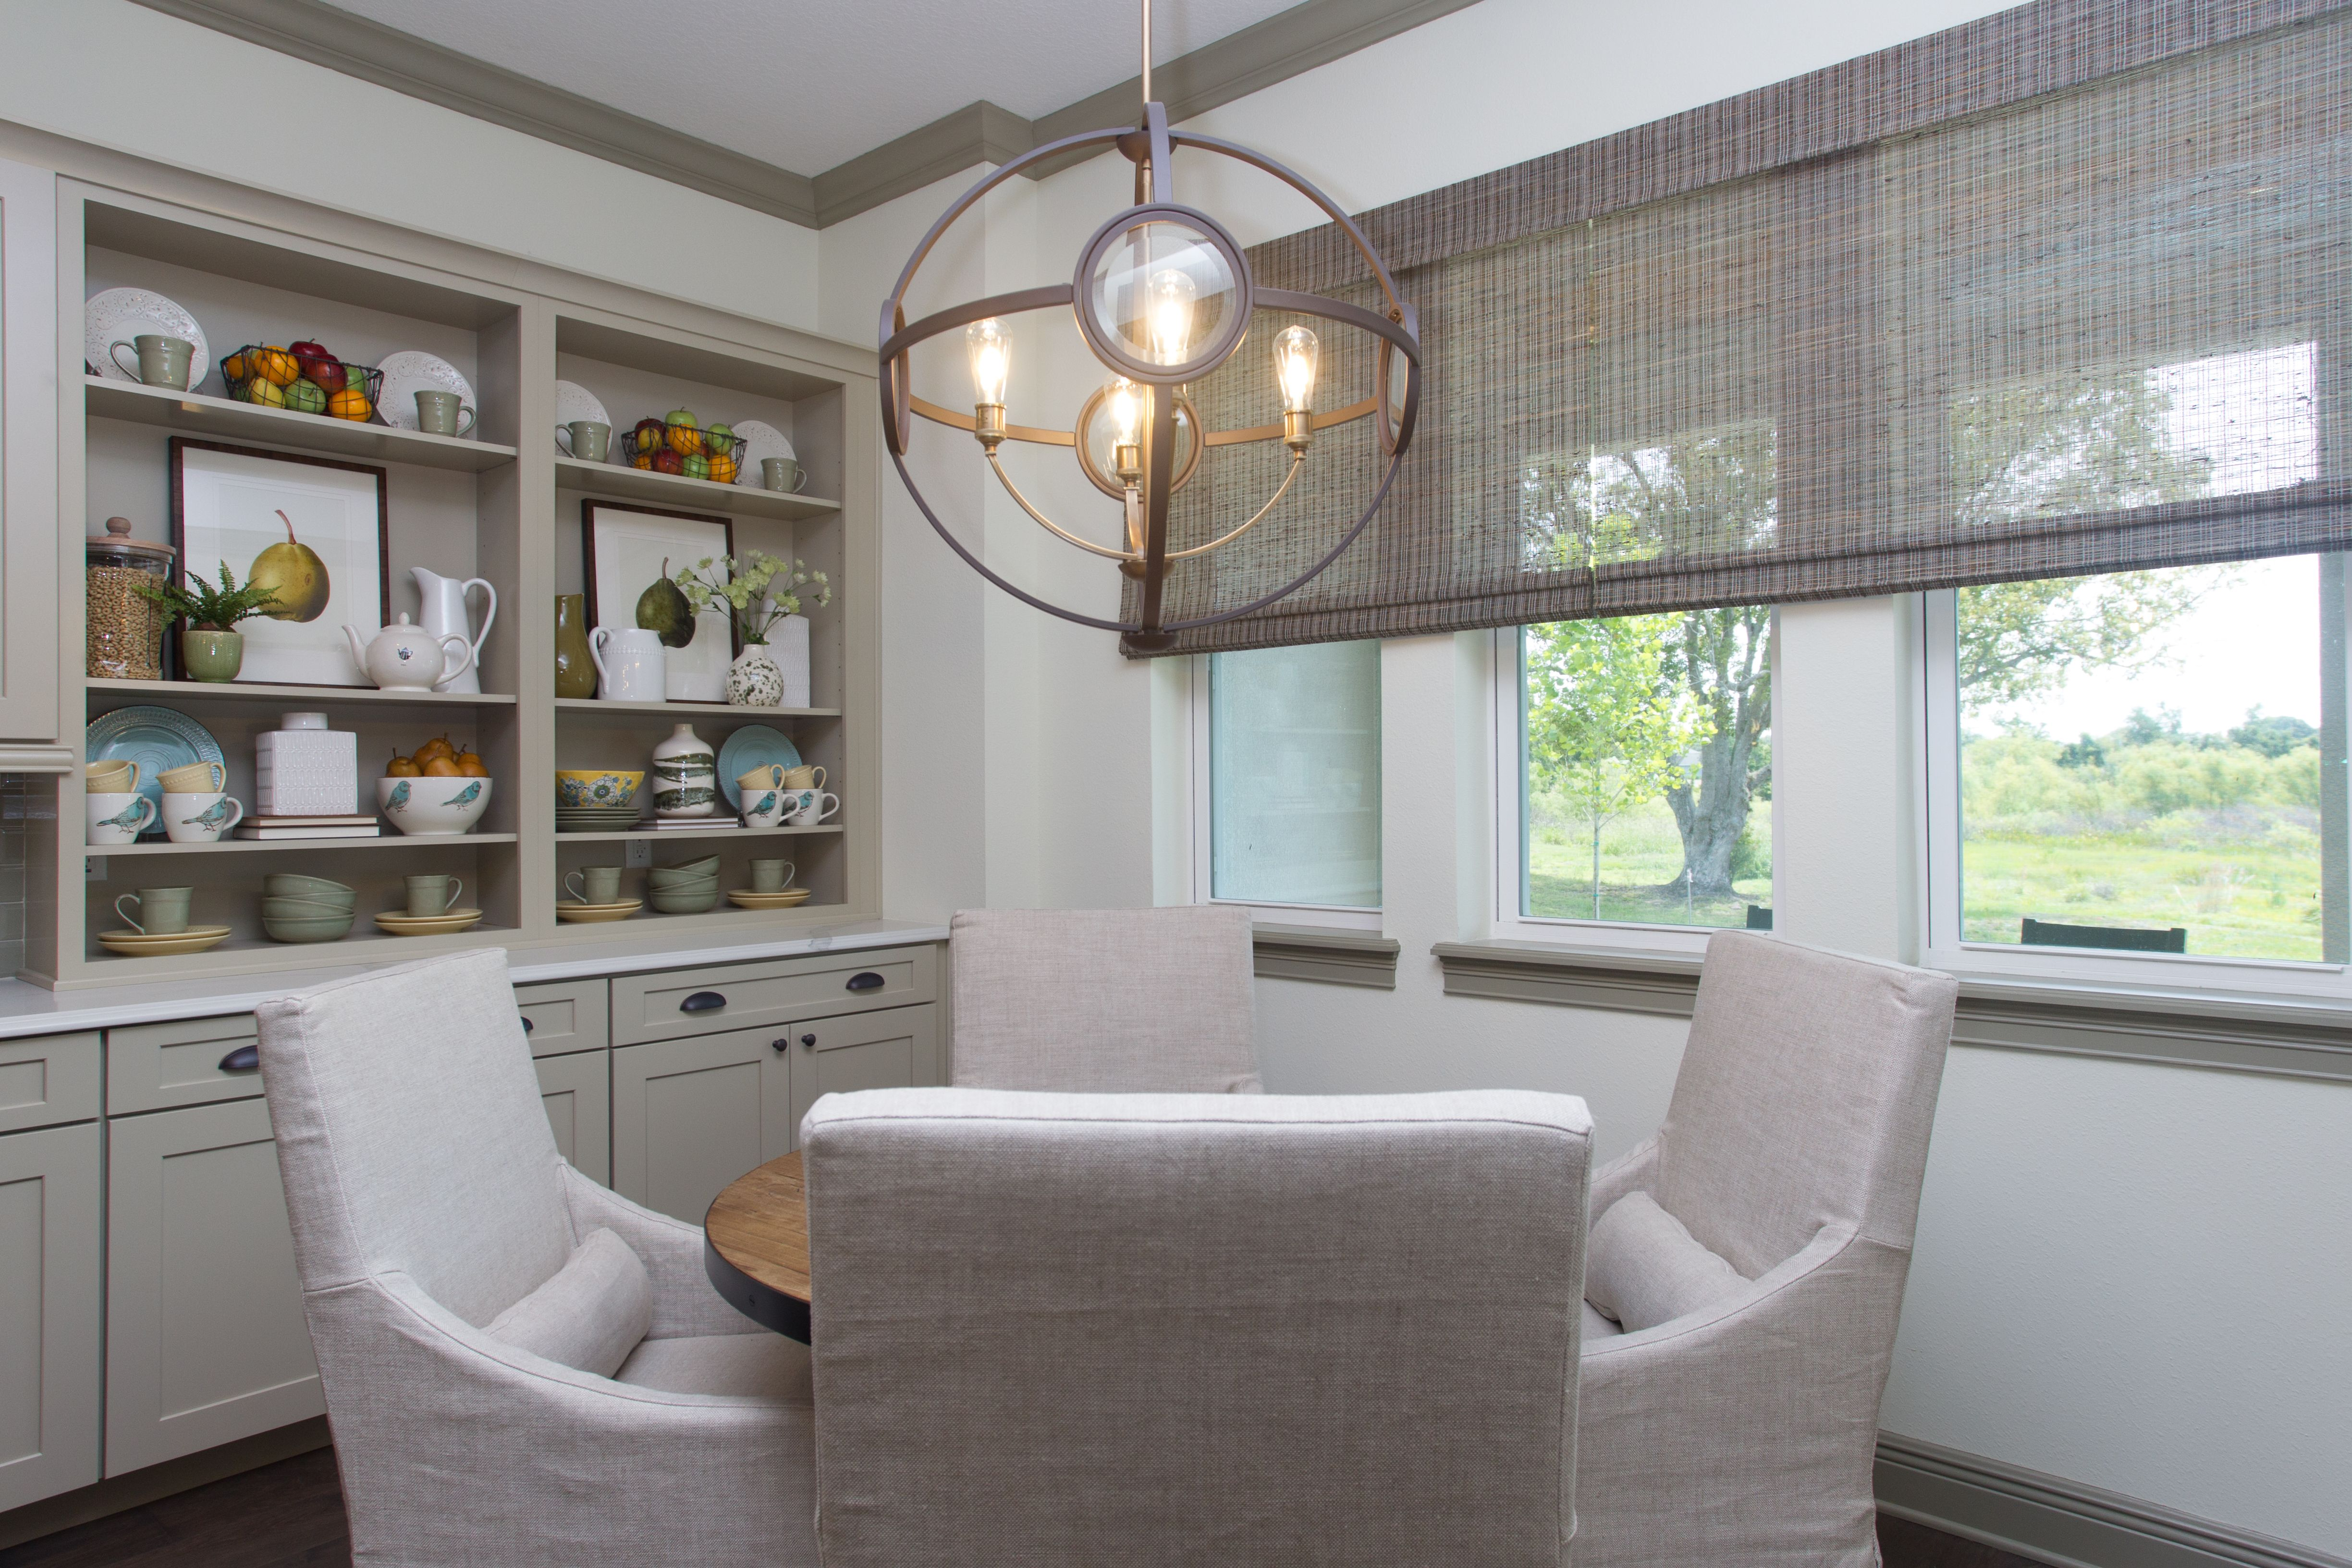 Kitchen featured in the Millhall By Regal Park Homes in Orlando, FL